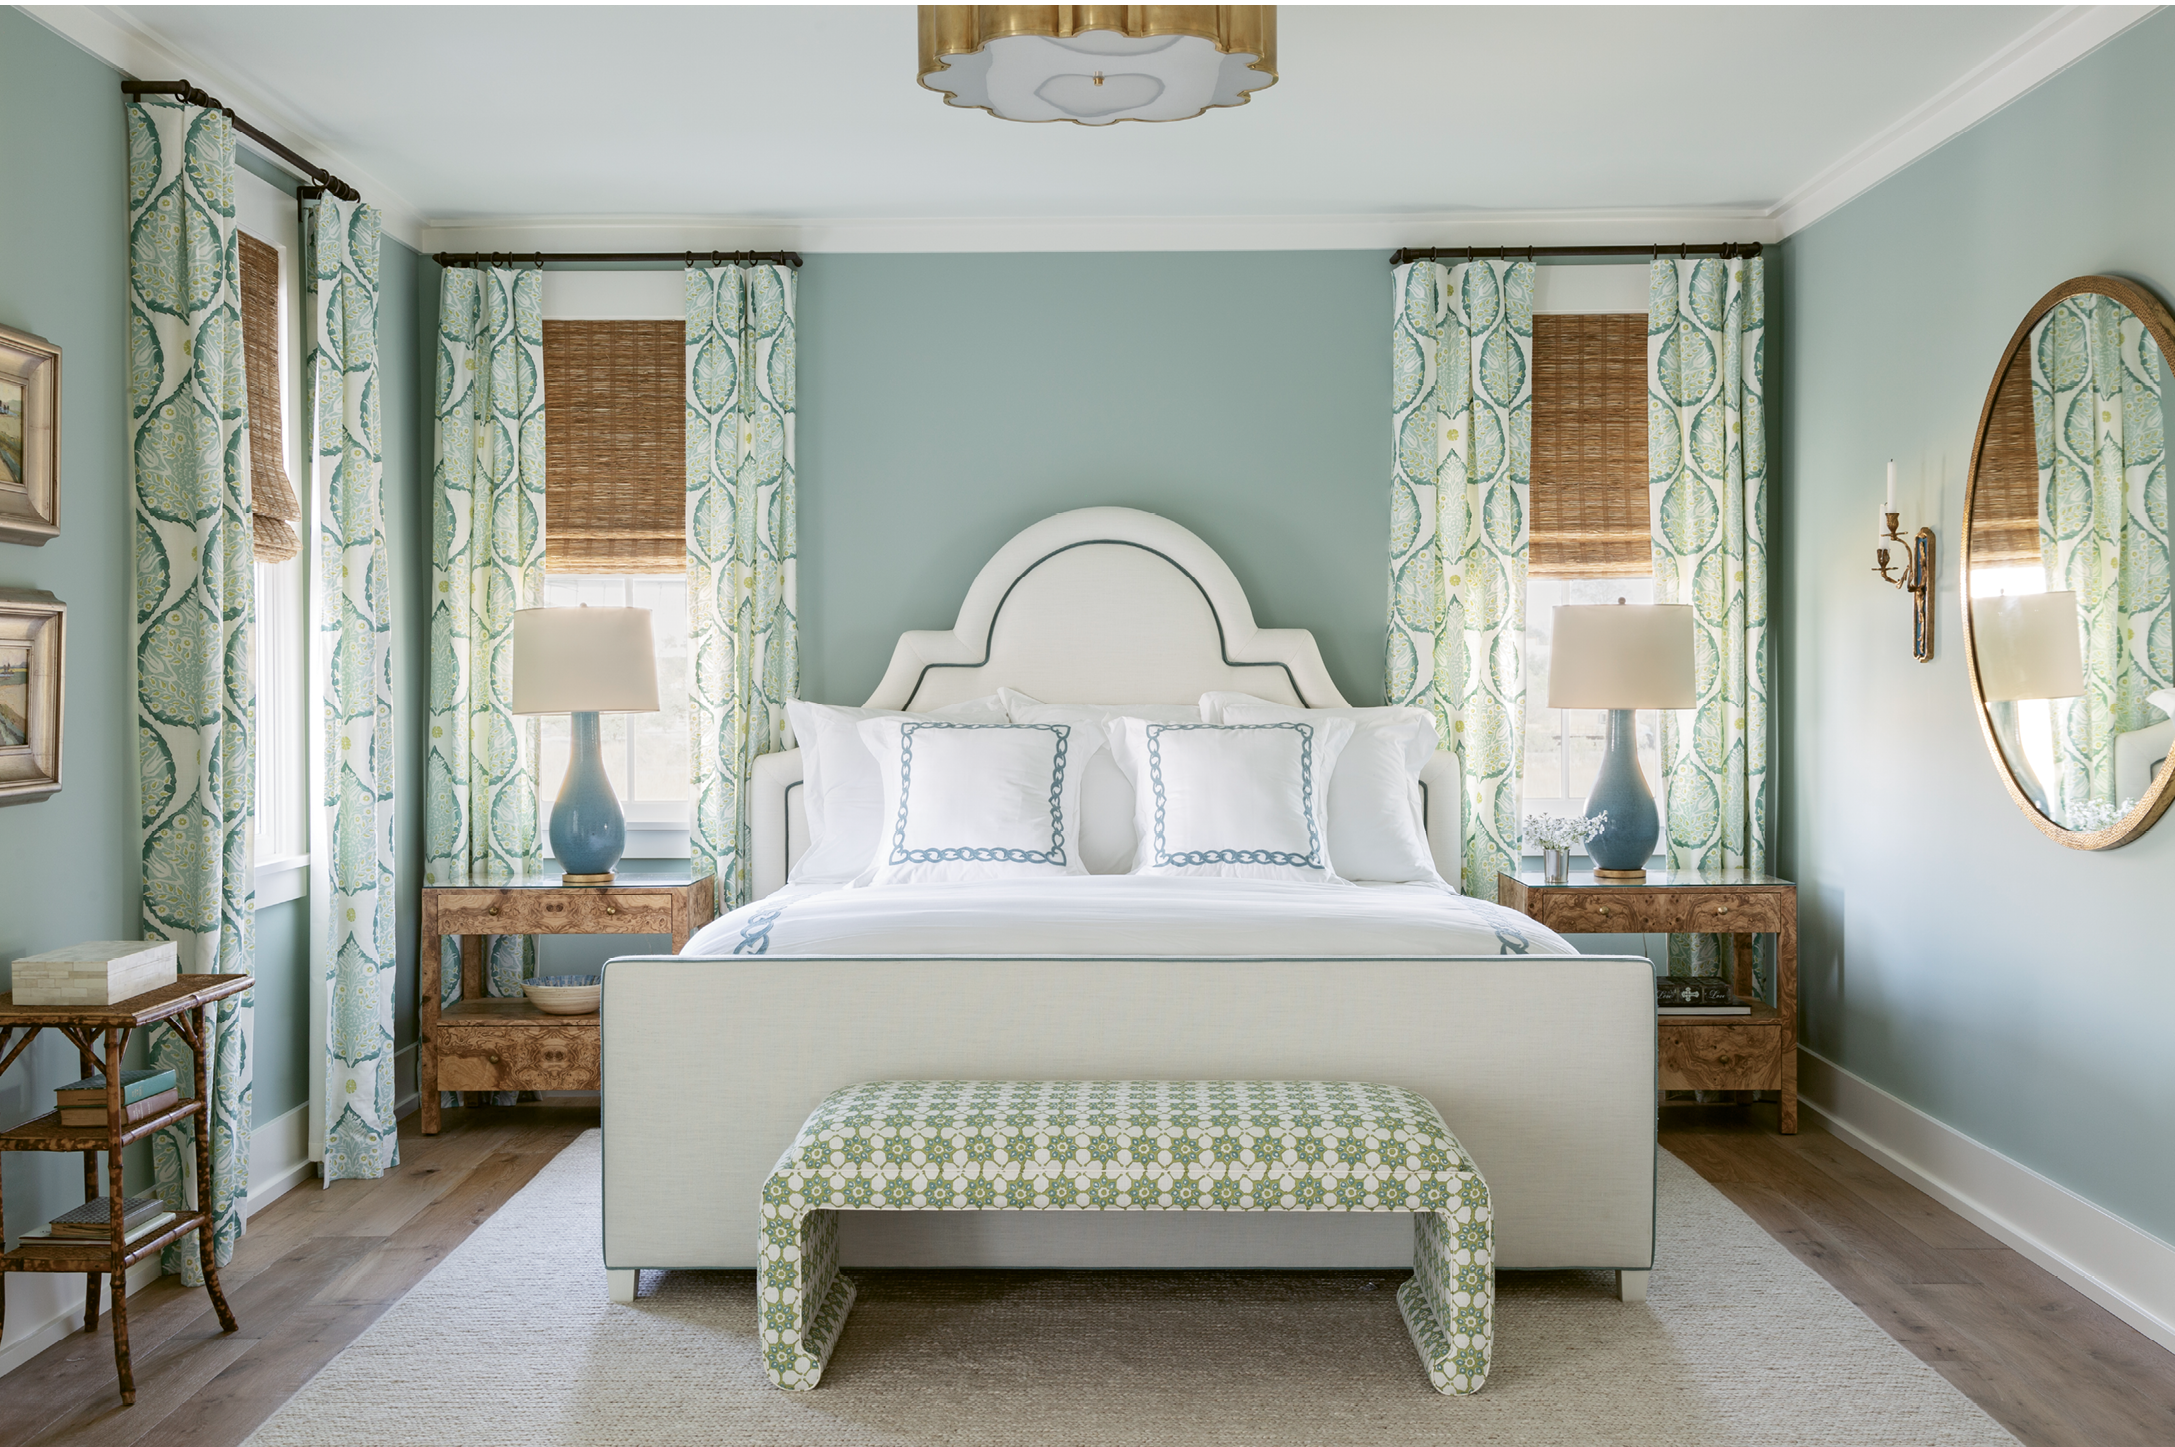 Beachy Boudoirs: The master bedroom is filled with colors inspired by the scenery outside.